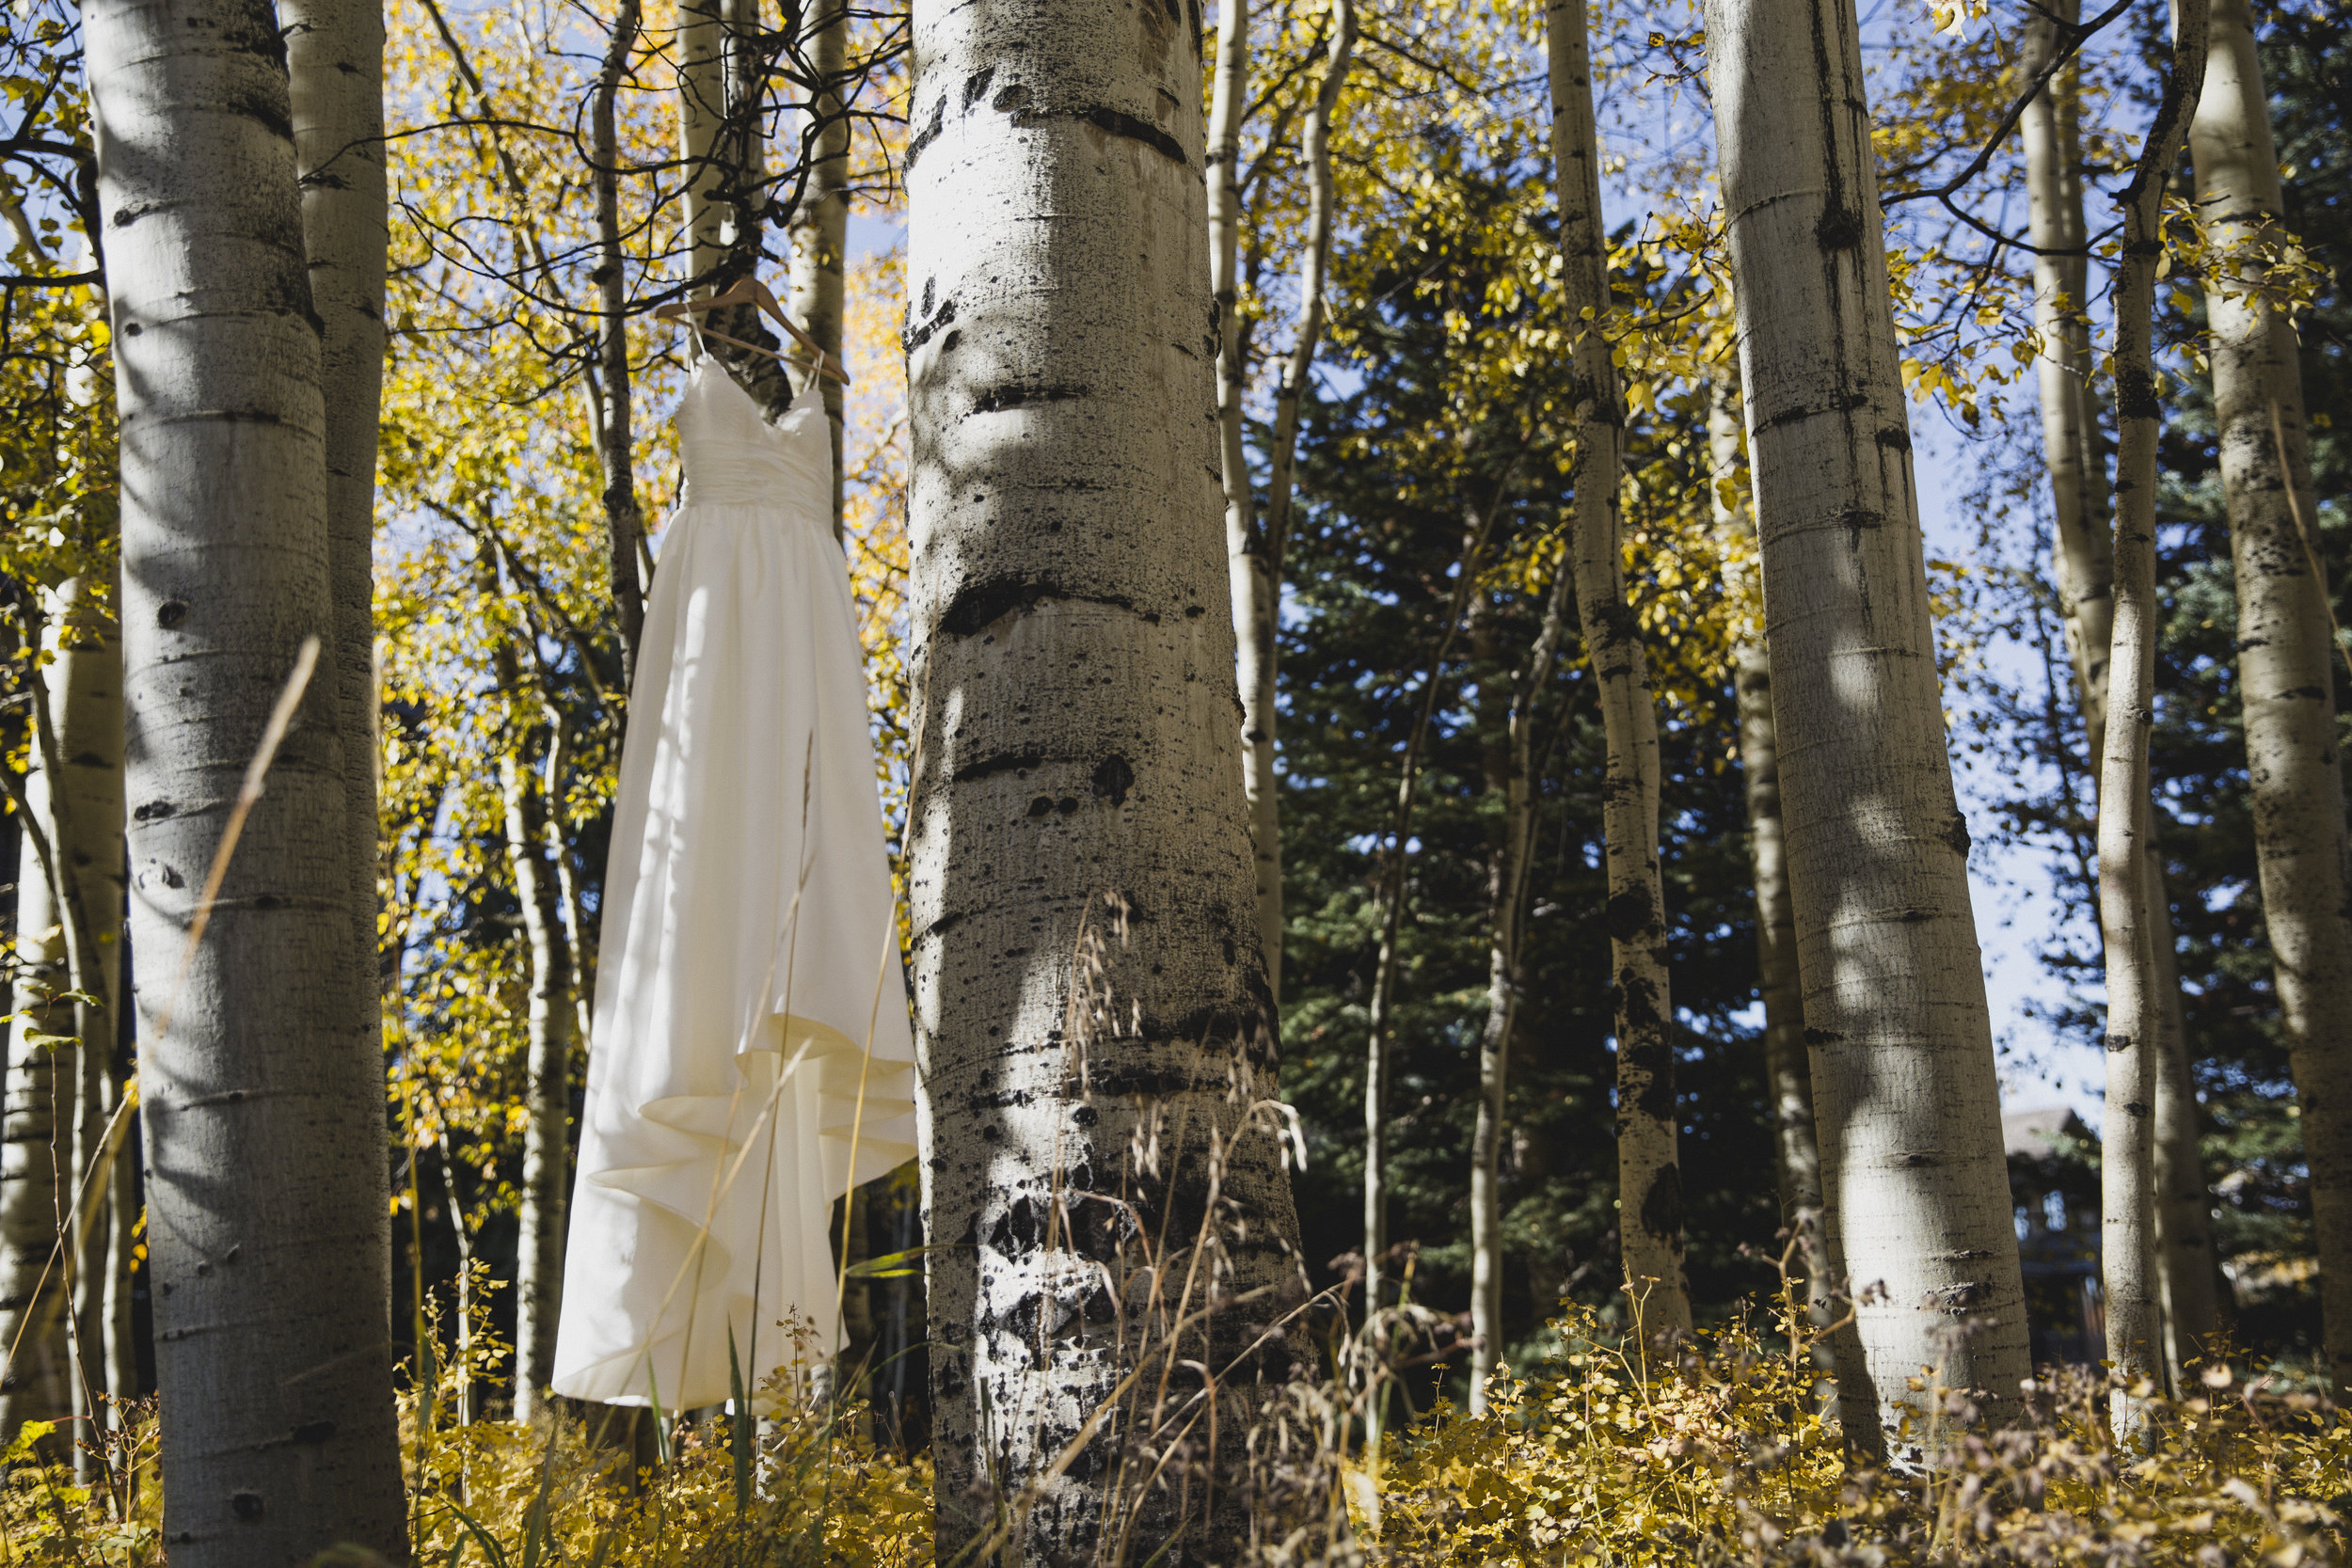 NE-LeahandAshtonphotography-Telluride-Wedding-Photography-8610.jpg